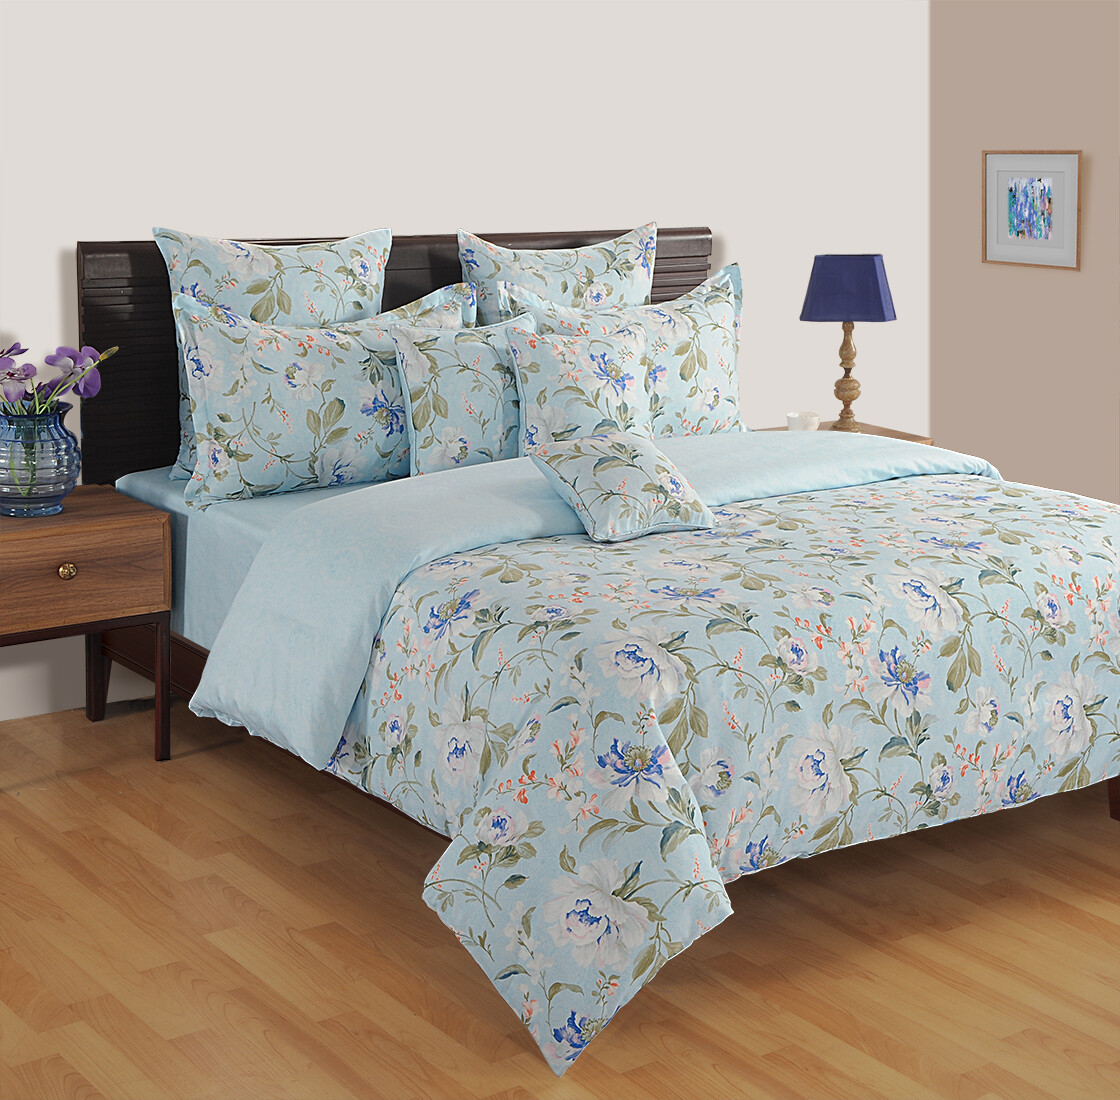 Swayam Lily of the Nile 120 TC Cotton Double Bedsheet with 2 Pillow Covers